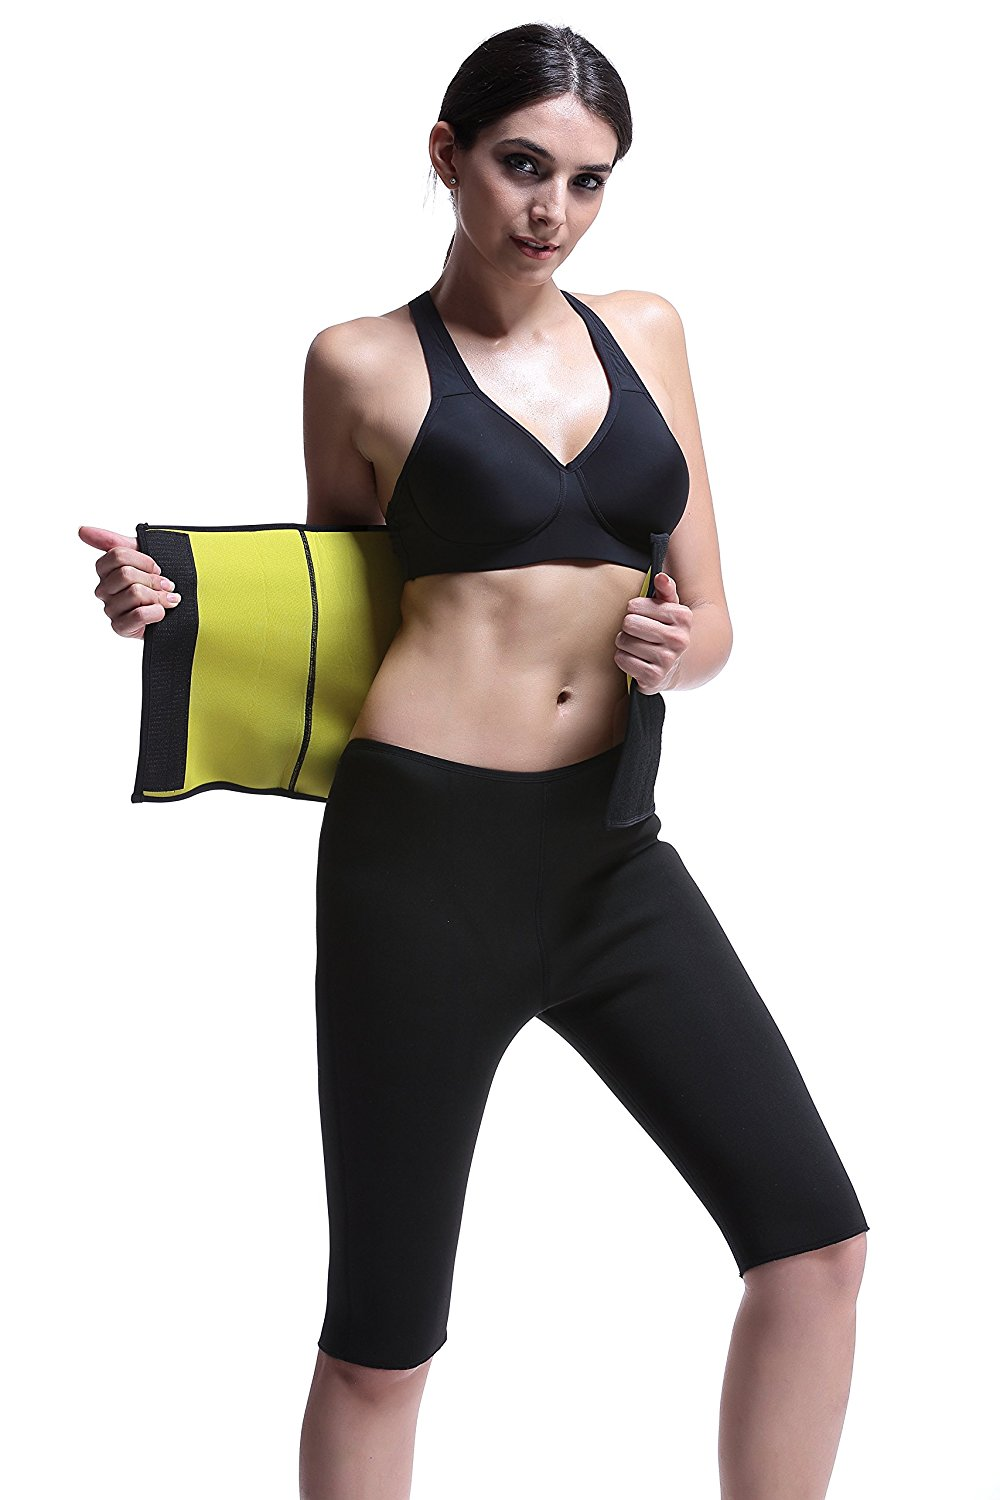 72850d9d79 Buy RoseJeopal Sauna Waist Belt hot Sweat Slimming Neoprene Body Shaper for Women  Belly Fat Burner